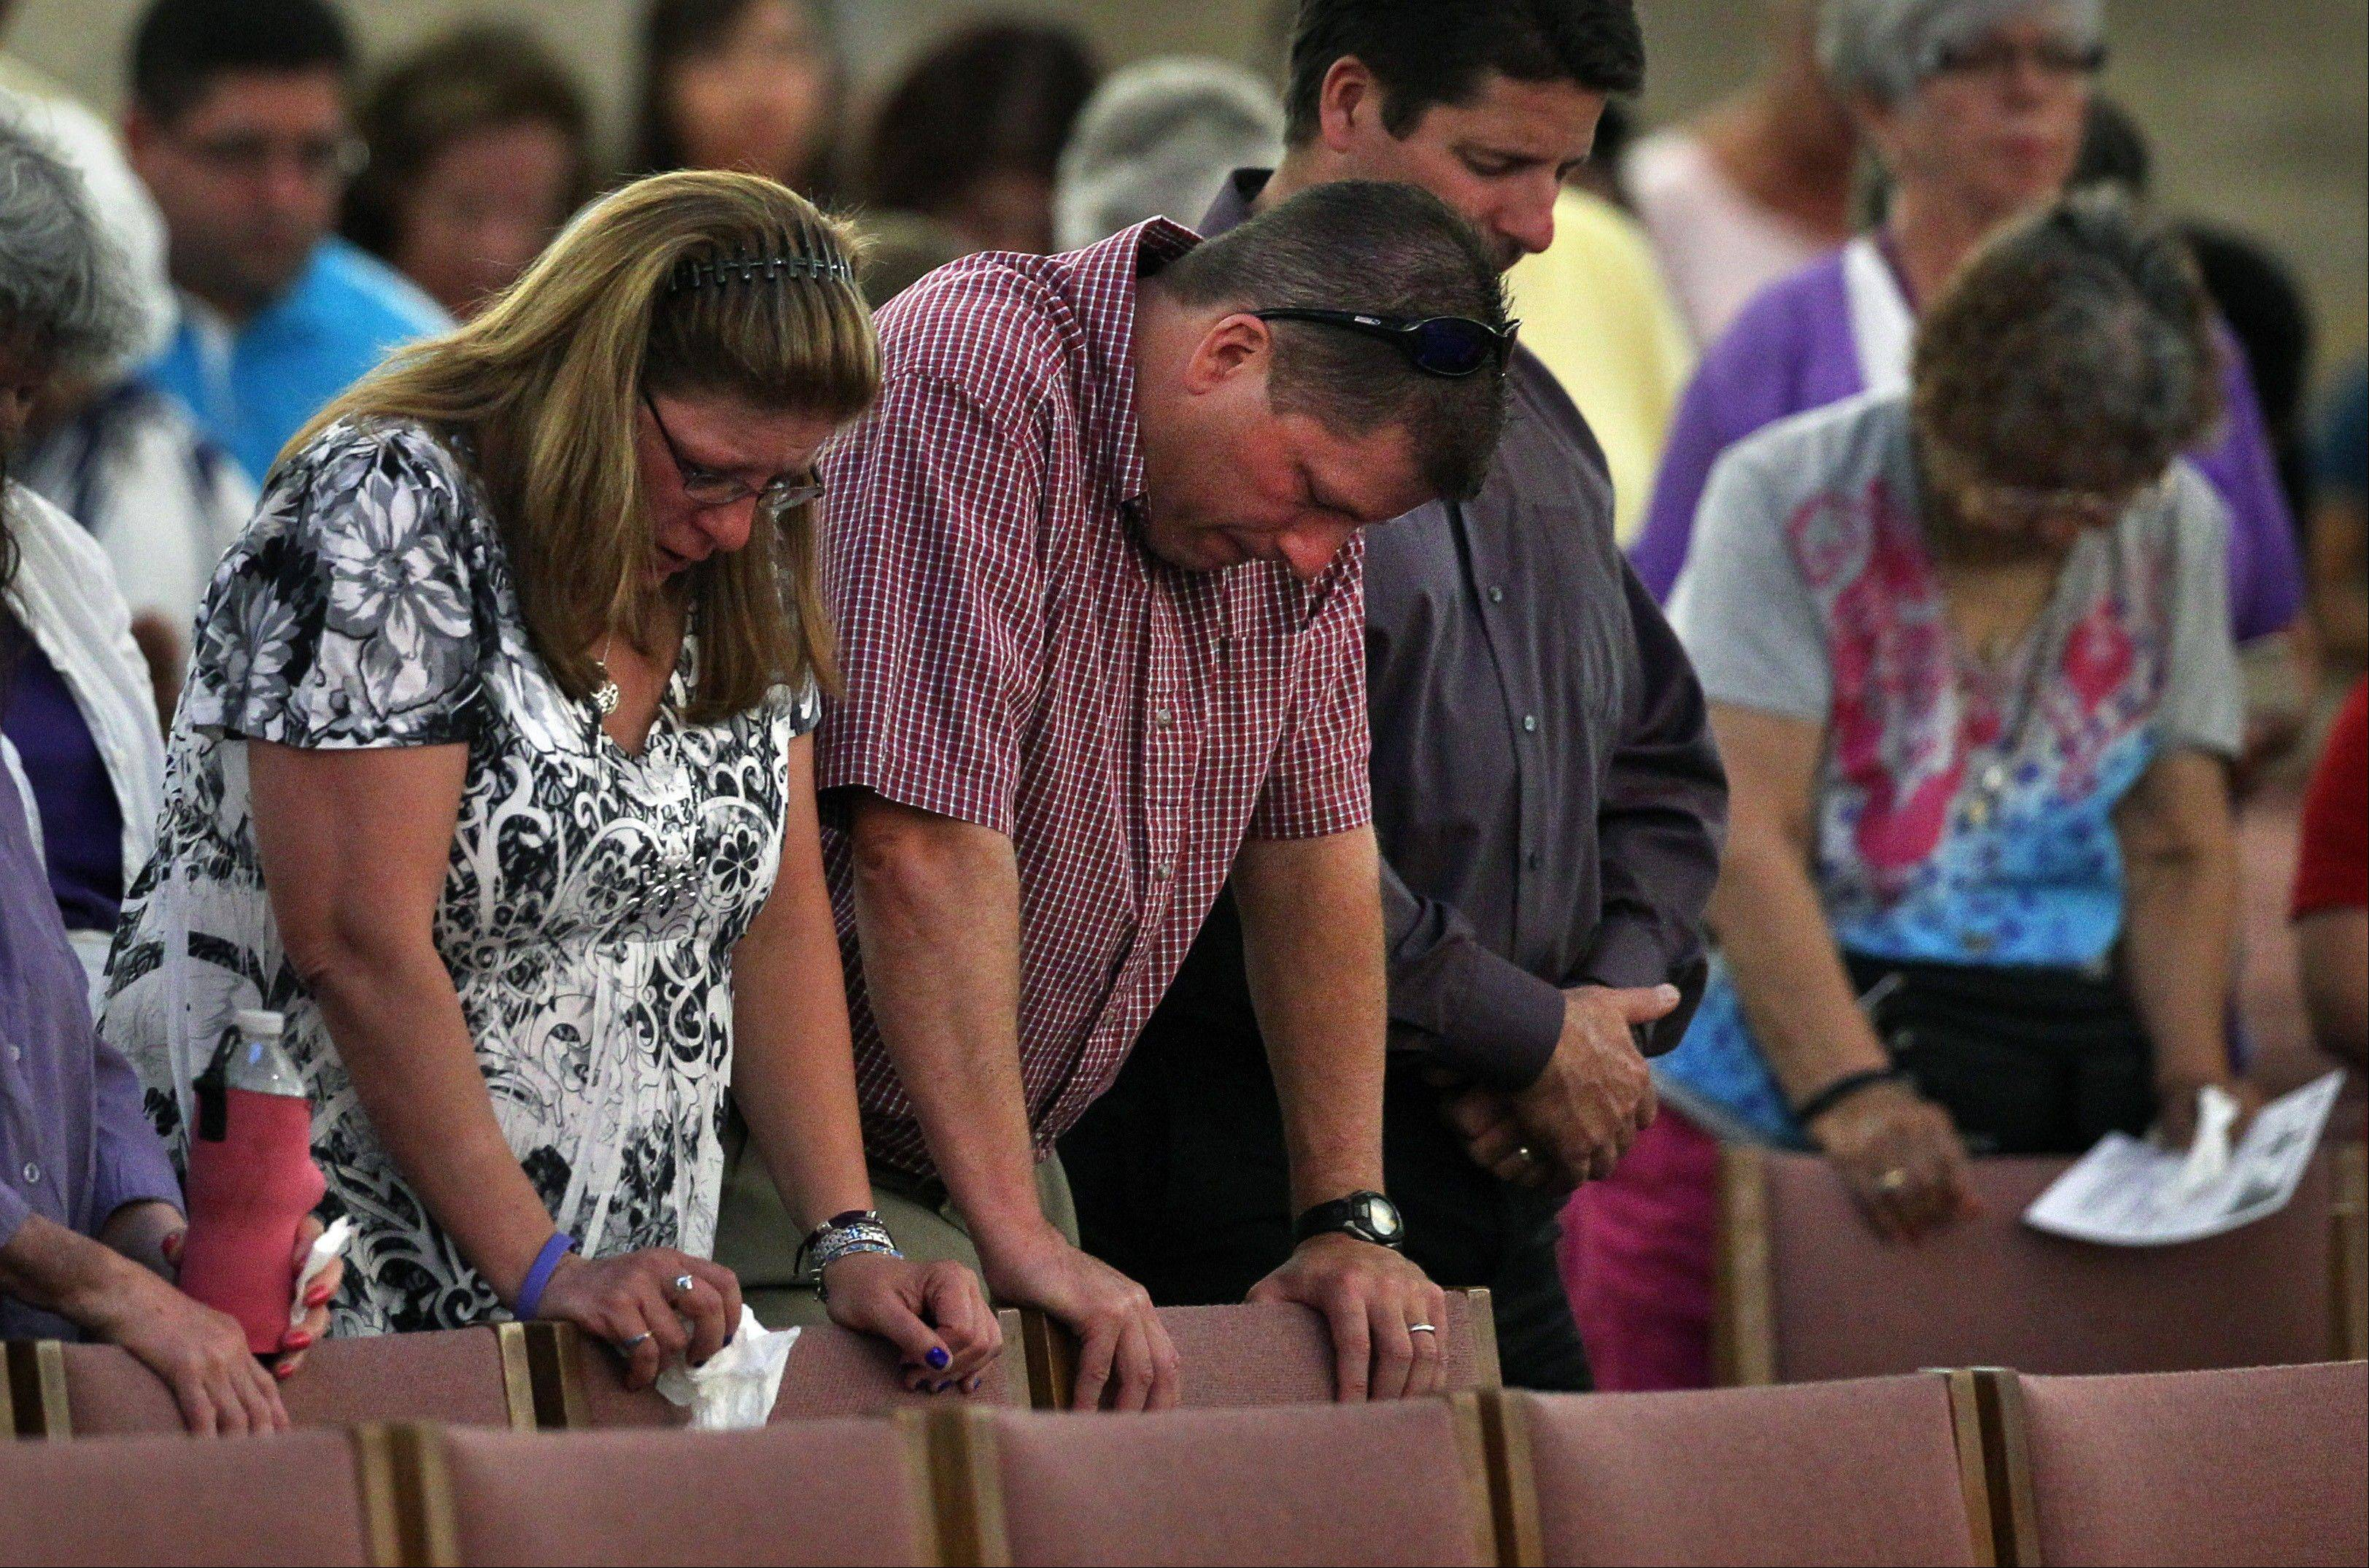 Associated Press Worshippers attend a memorial mass held for supporters and families of those killed in the Aurora movie theater shootings, at St. Michael the Archangel Catholic Church, in Aurora, Colo., on Friday July 19. Saturday, July 20, marks one year since the theater killing rampage left 12 dead and 70 wounded.